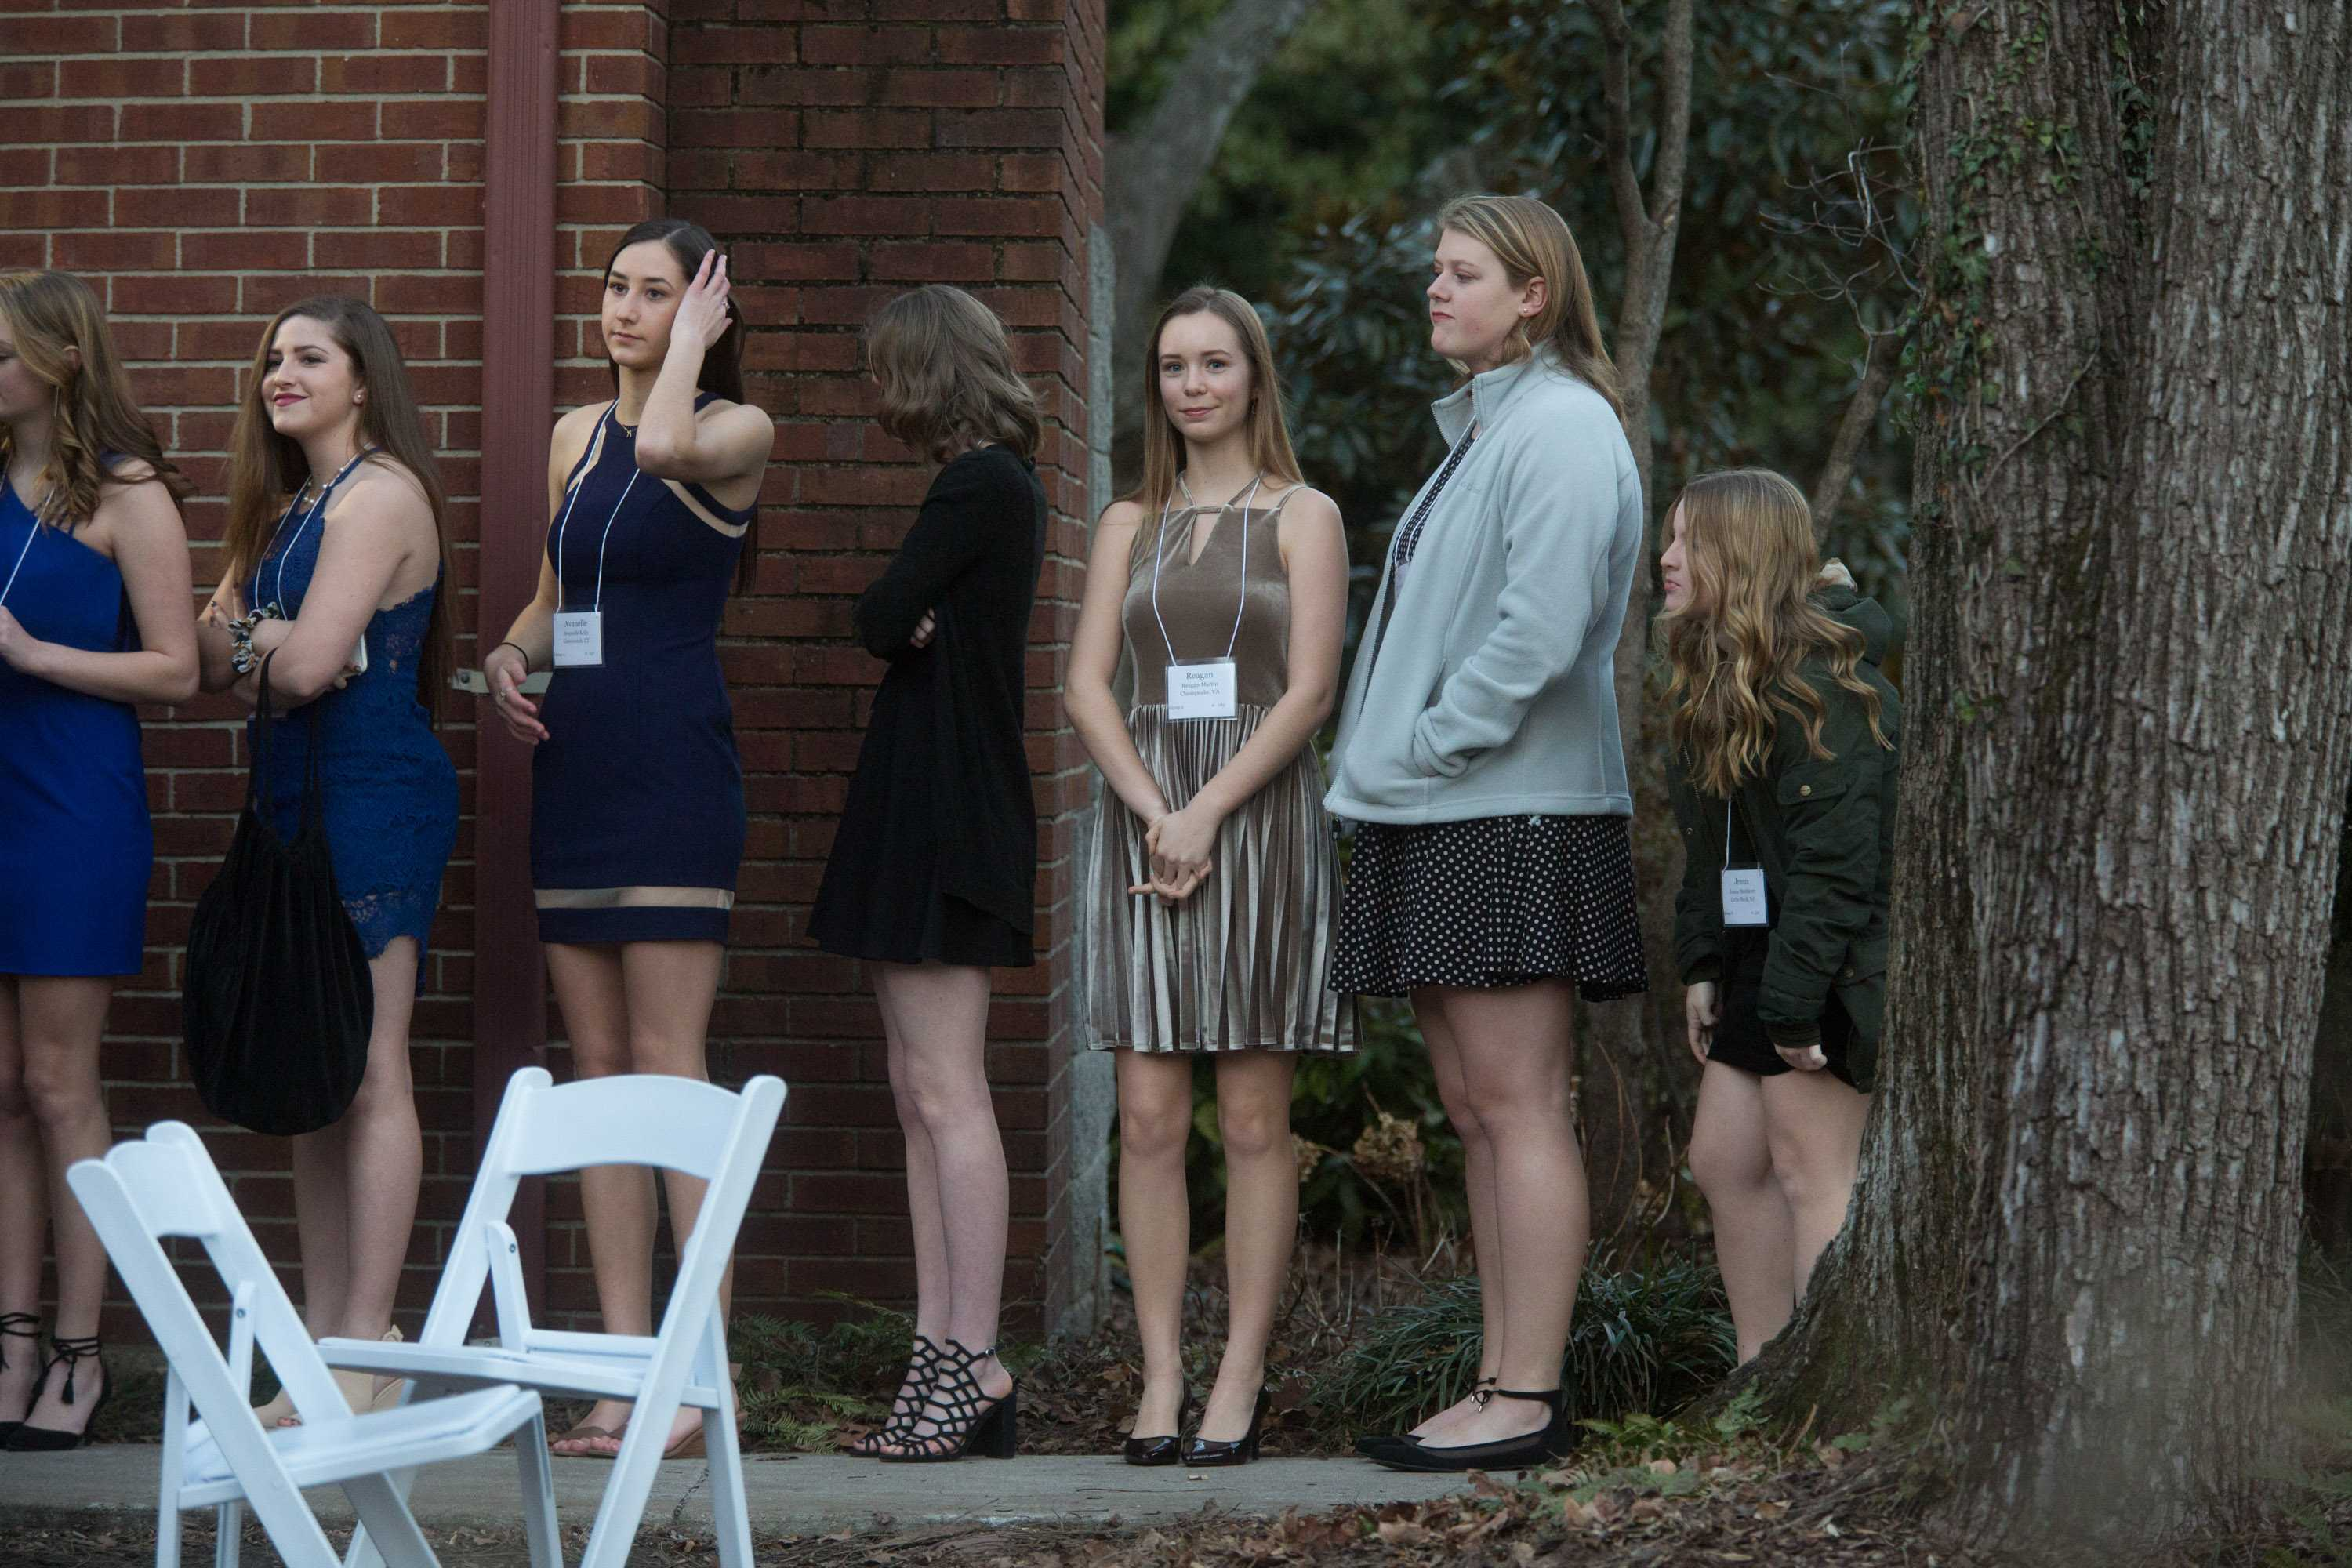 IN PHOTOS: Sorority recruitment